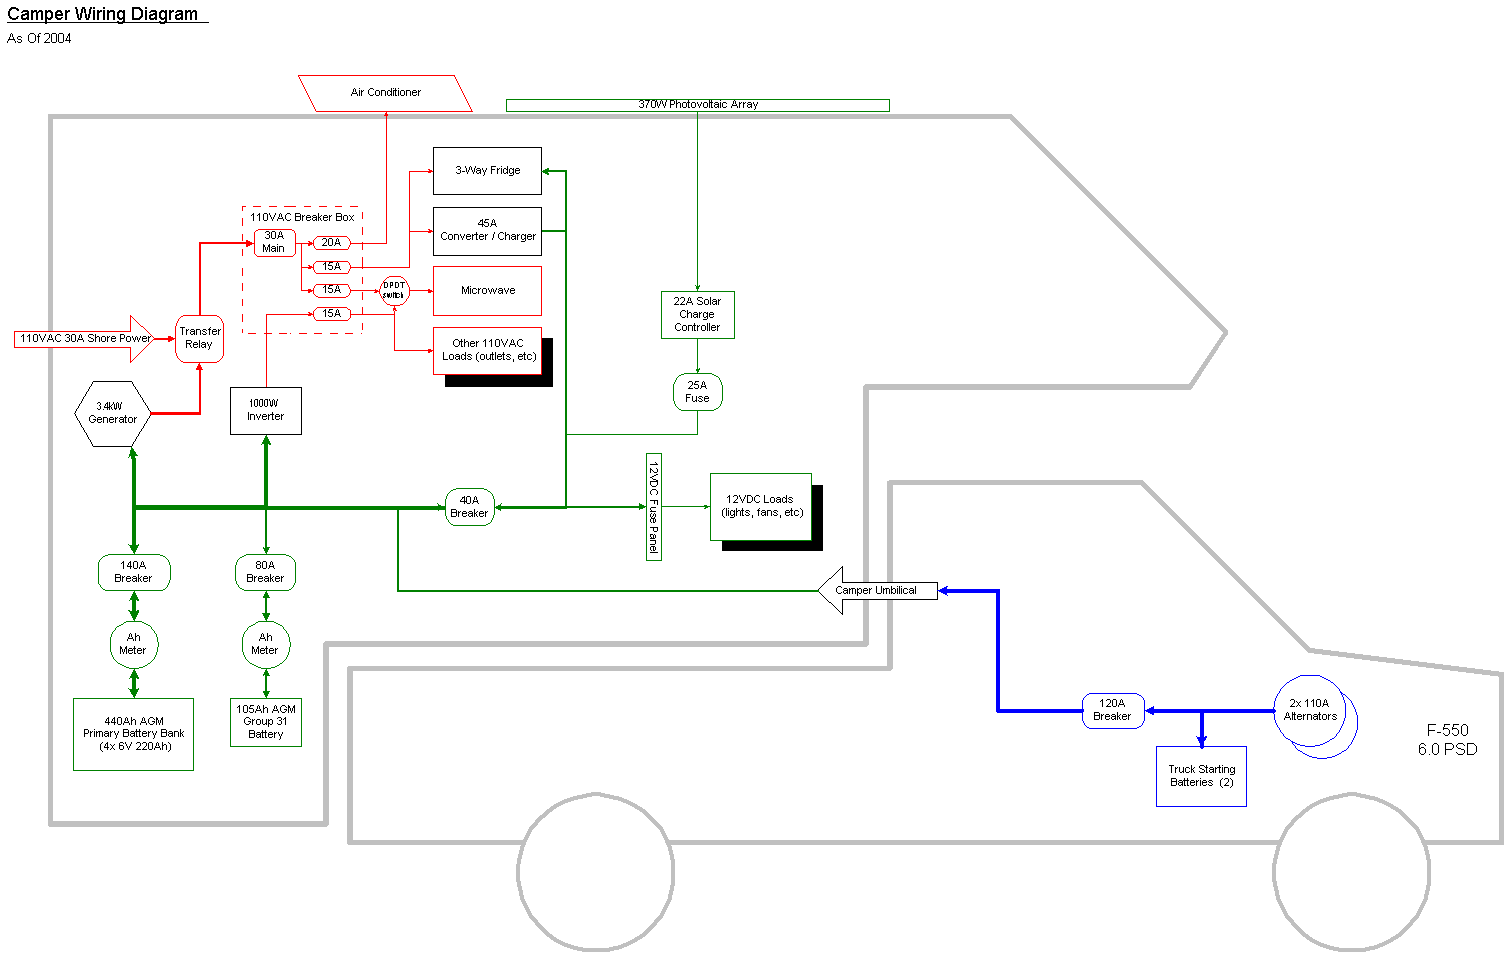 2004Diagram camper wiring diagram camper wiring diagram vw 1969 \u2022 wiring 30 amp rv plug wiring diagram at arjmand.co